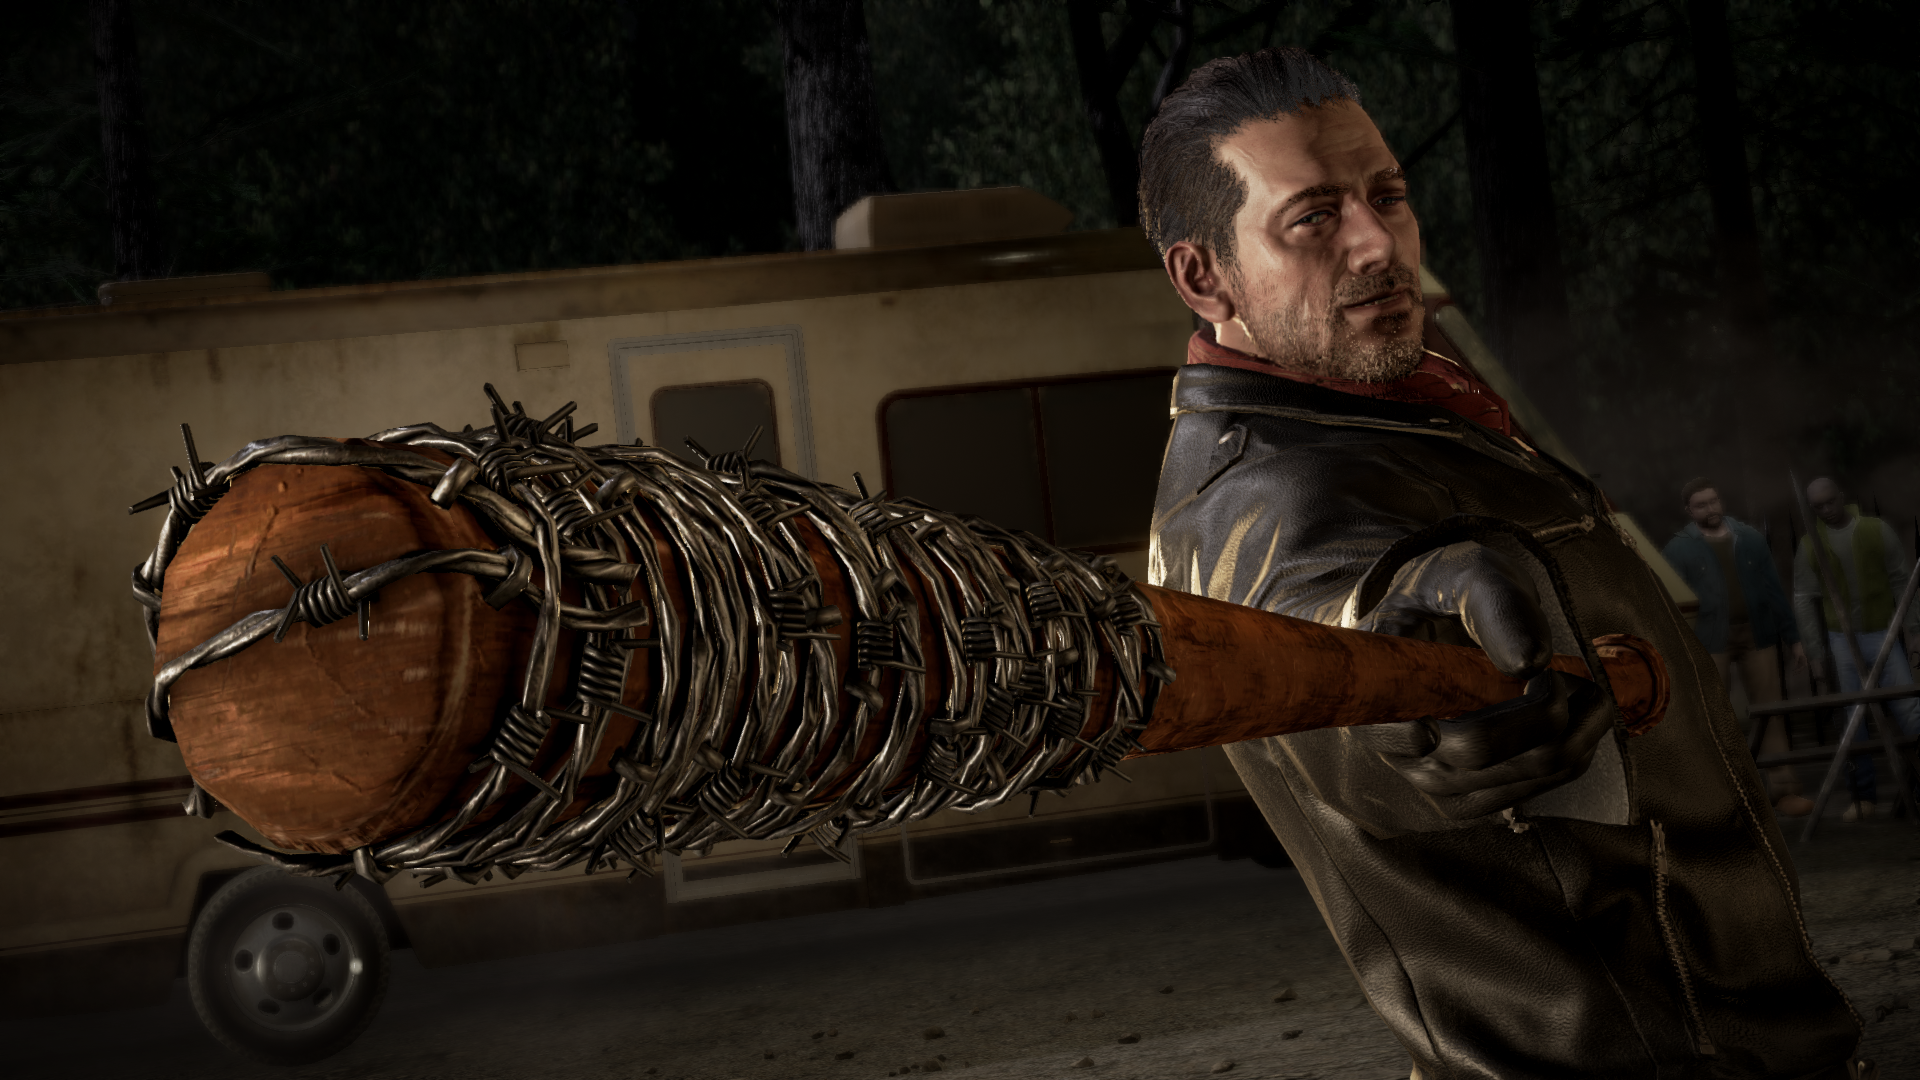 Tekken 7 Veteran Doesn't See A Future With The Walking Dead's Negan